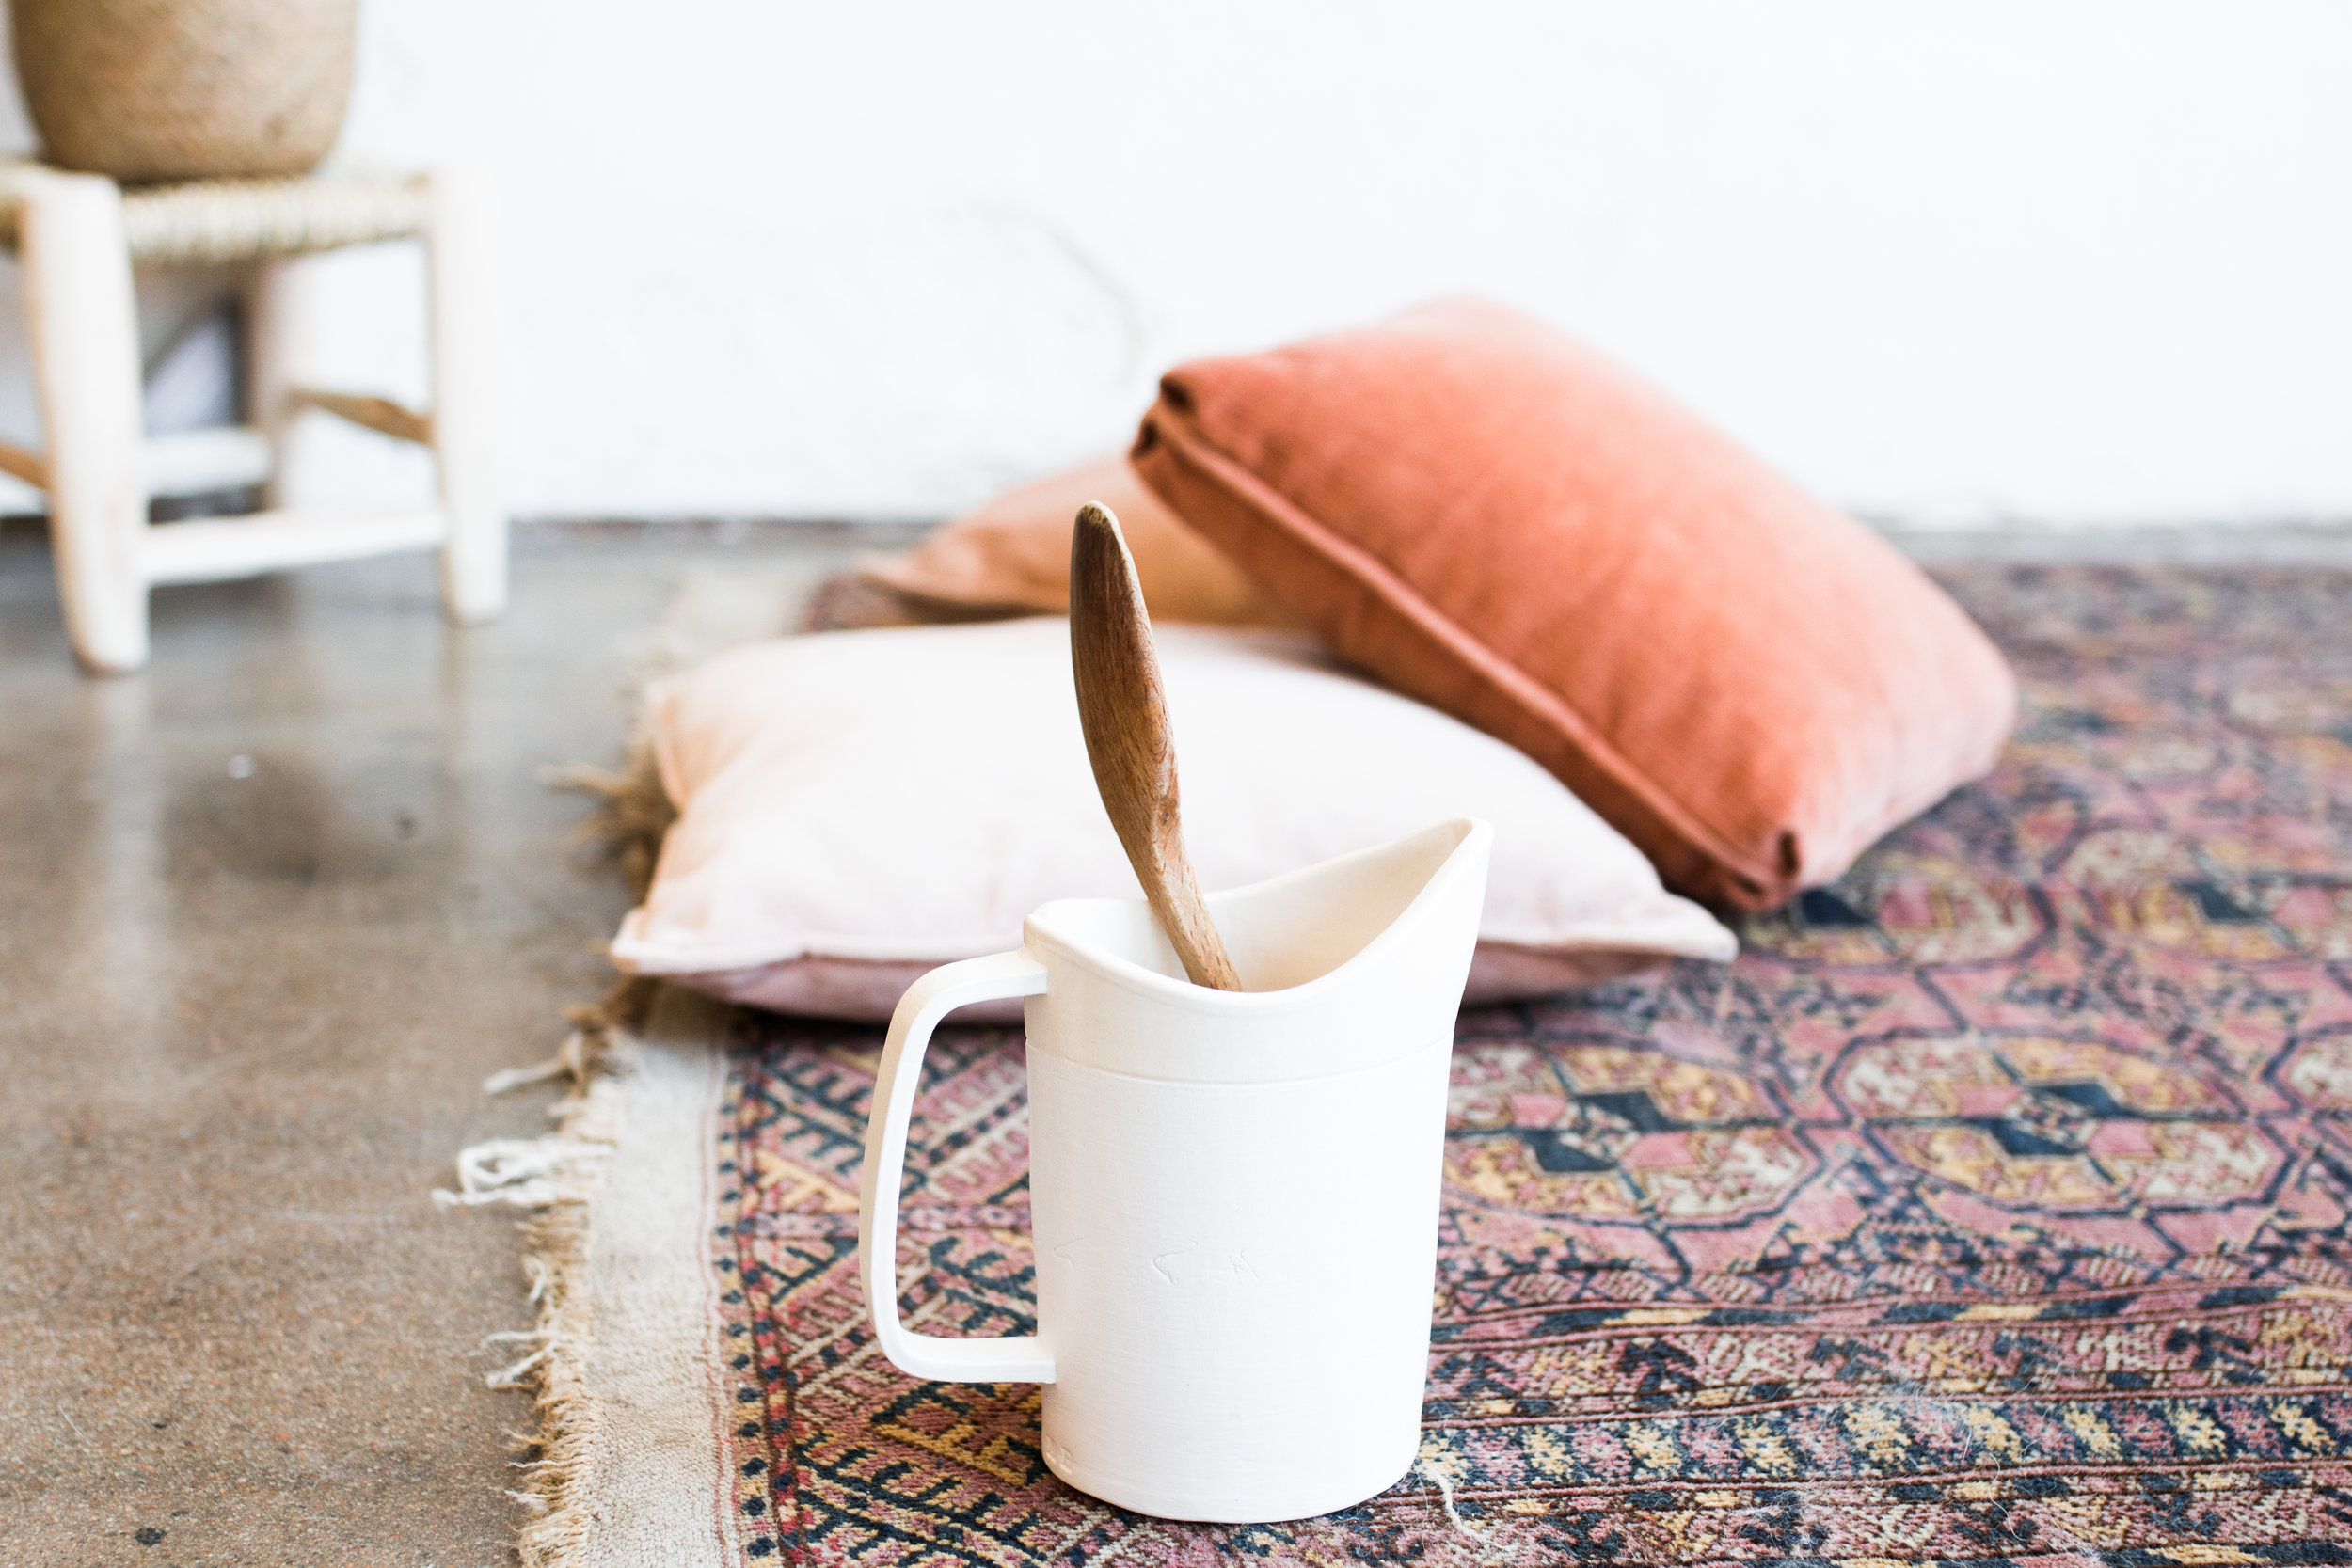 Here is a simple example. This image has a SHALLOW depth of field and a WIDE aperture. The pitcher and spoon are in focus, the surrounding elements are out of focus. This image was shot at f/2.8. (Image taken by  Tina Lynn Photography  from Kindred Photography Workshop - Tulsa)